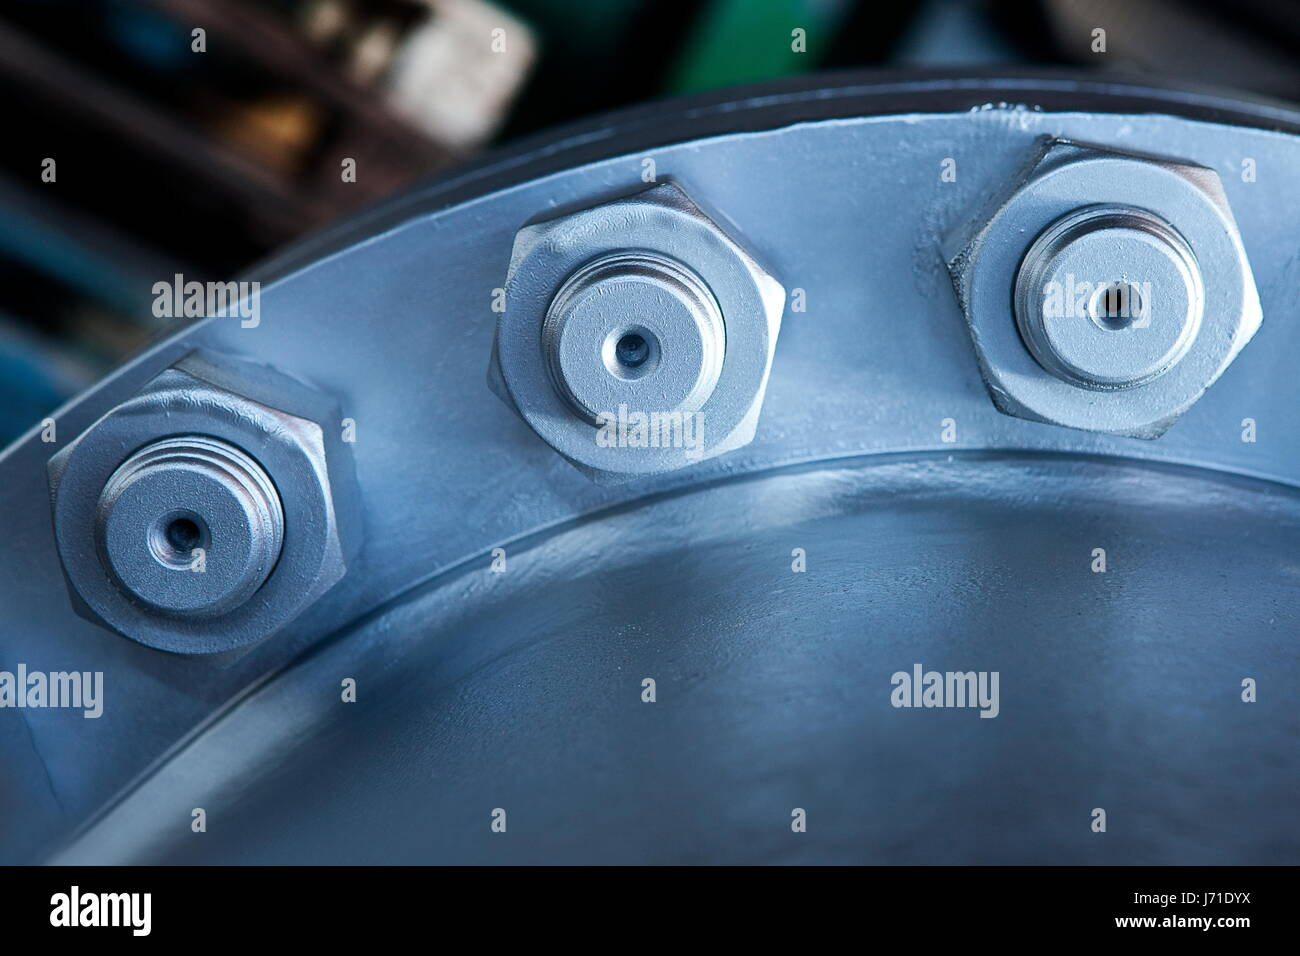 Joint of two flanges by bolts and nuts - Stock Image